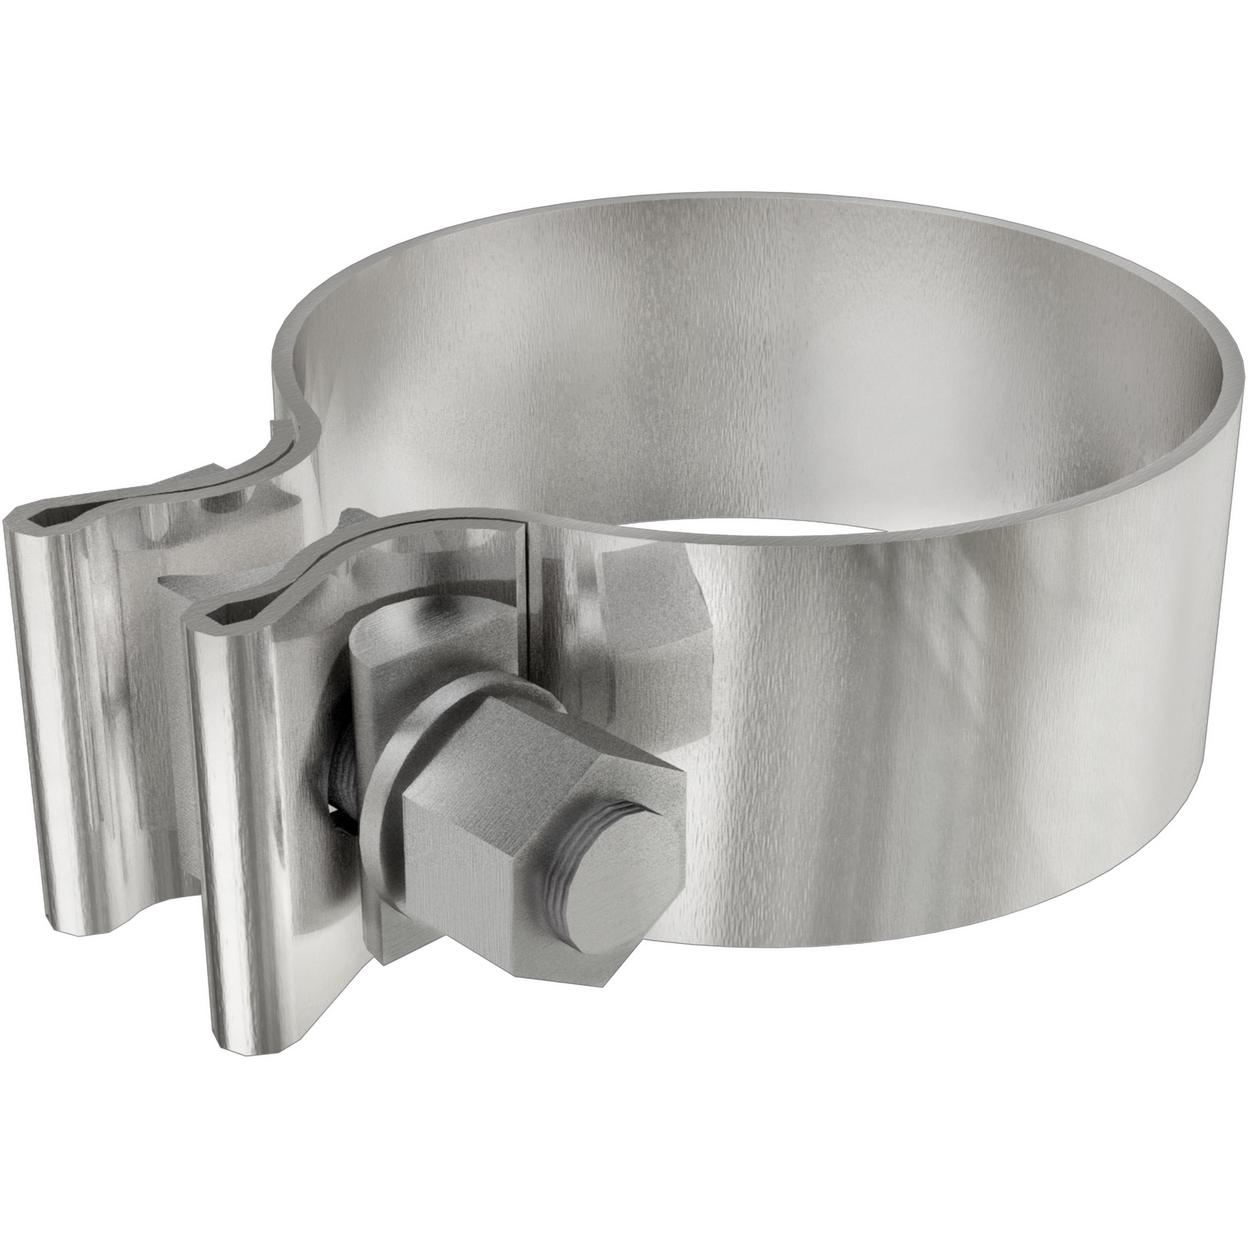 Lap Joint Band Clamp - 4.00in.